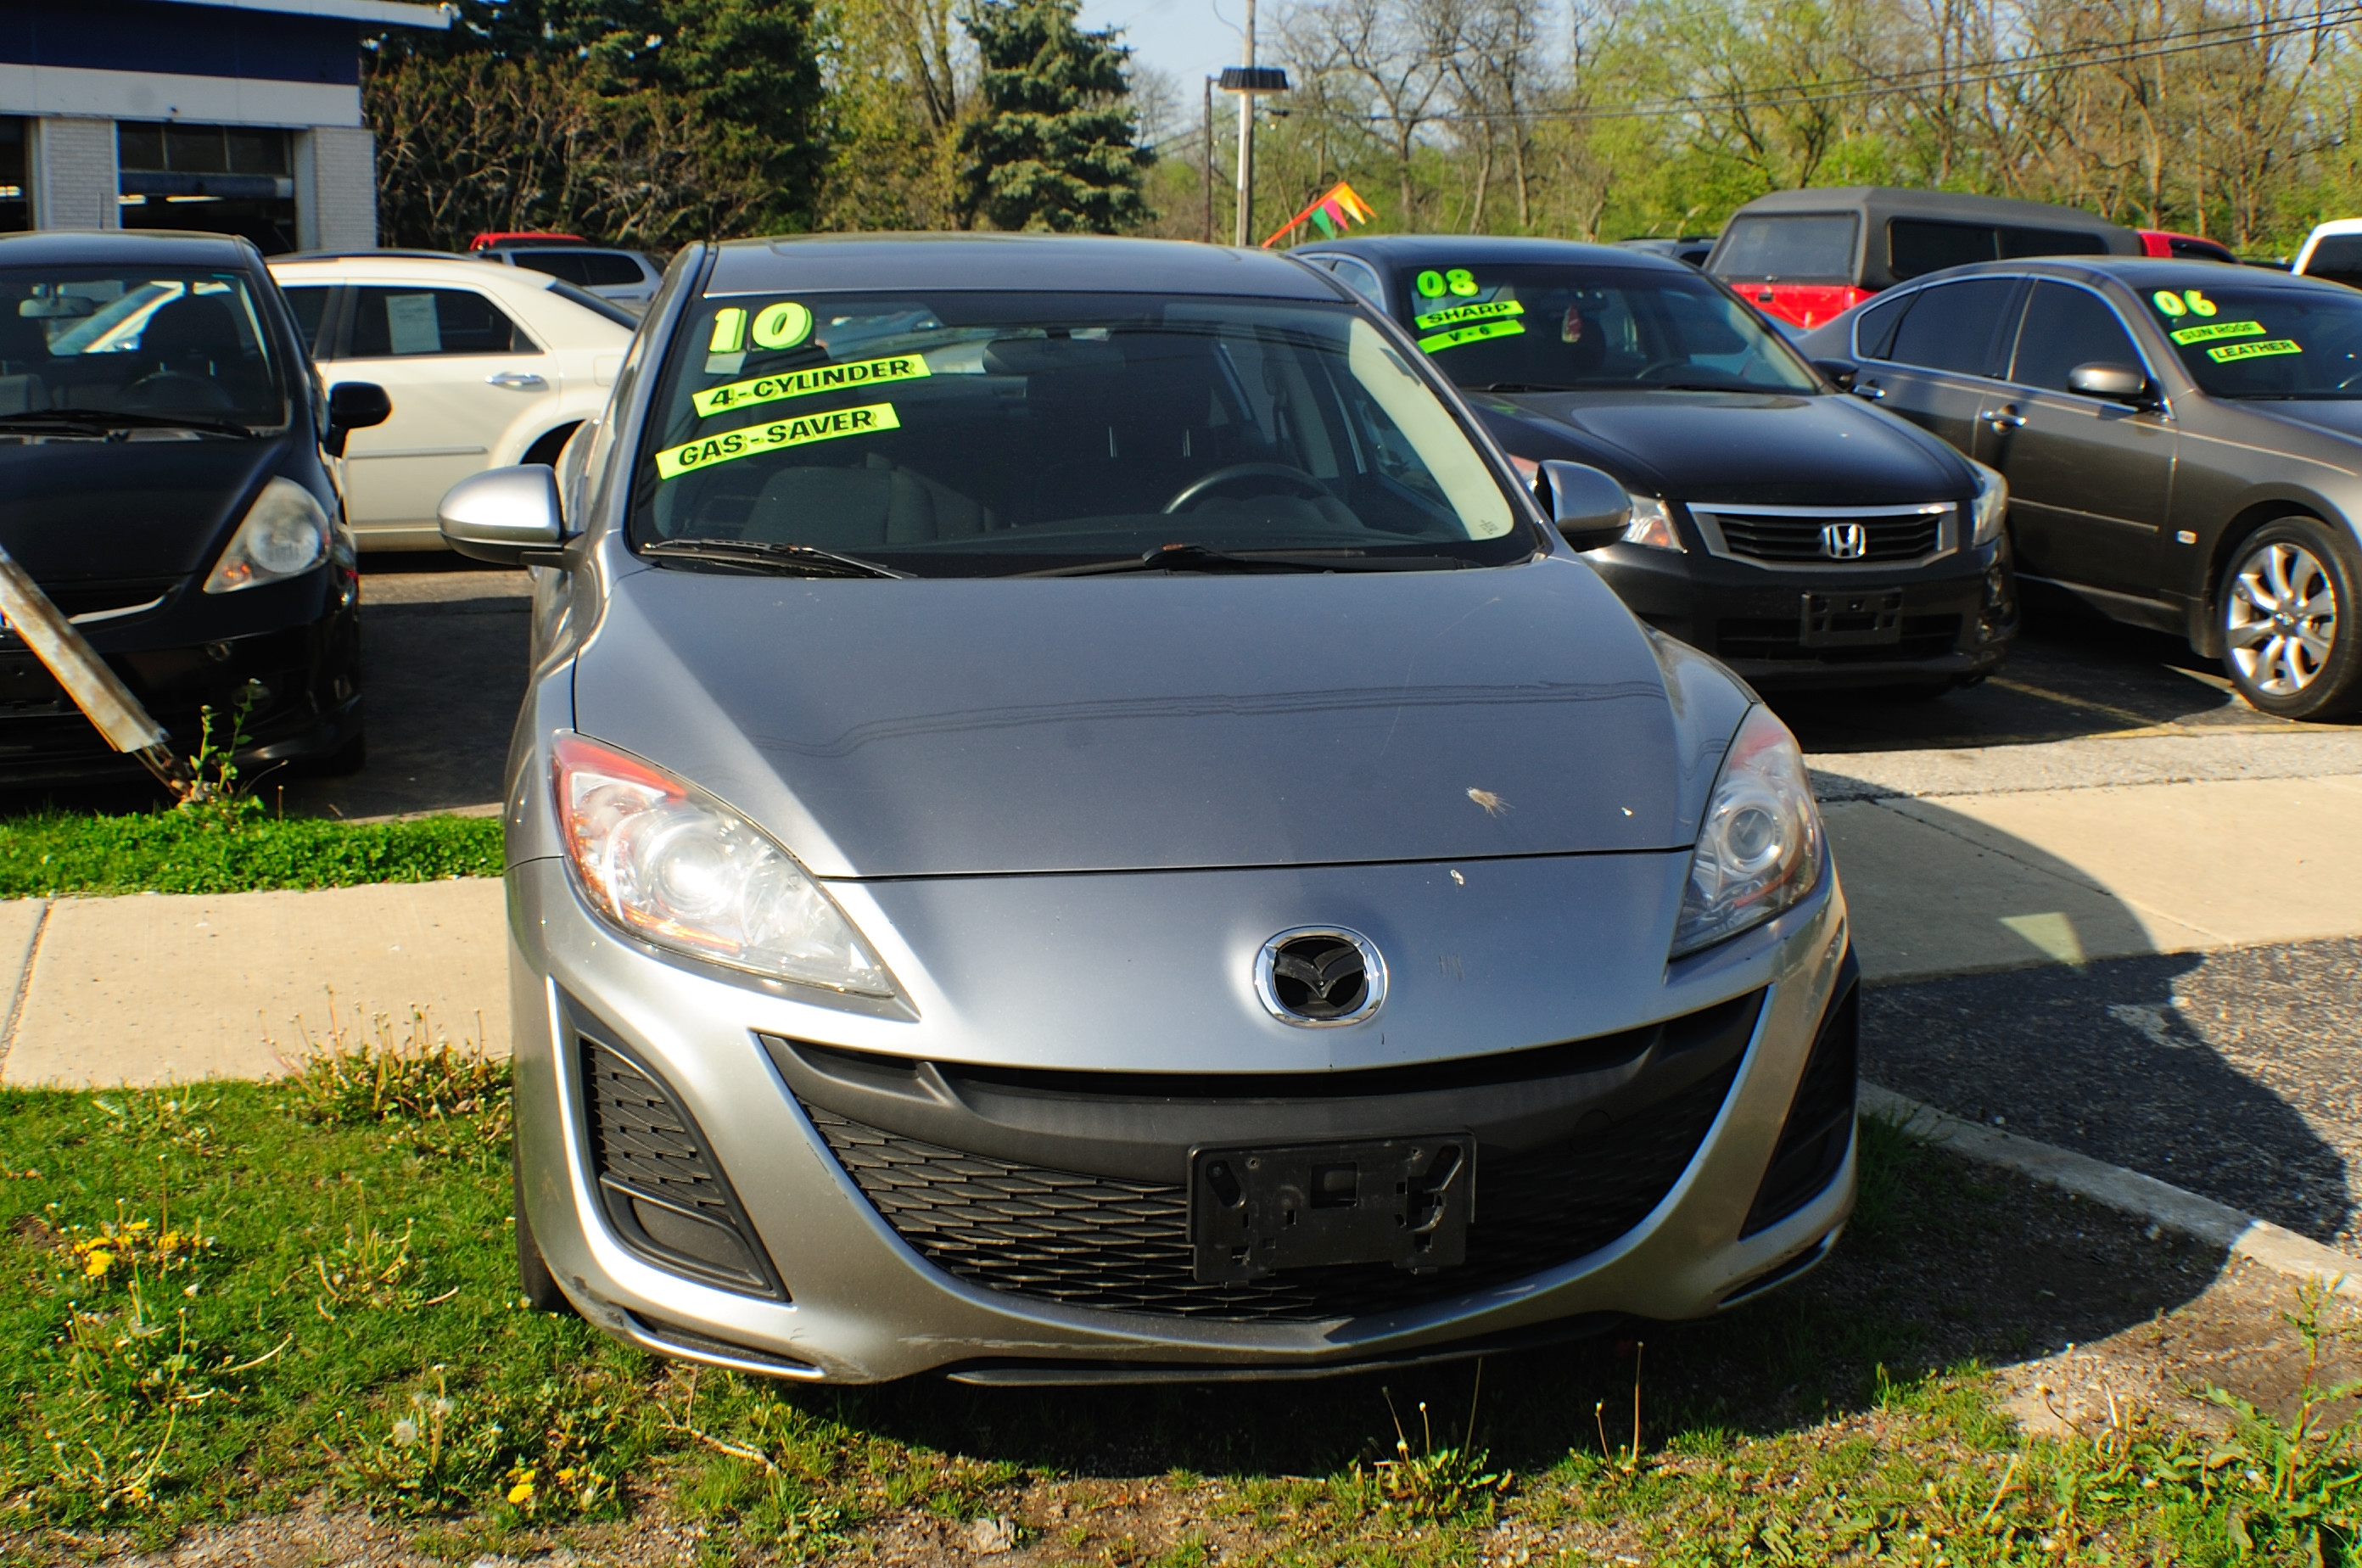 2010 Mazda 3 Silver Used Sedan car sale Buffalo Grove Bollingbrook Carol Stream